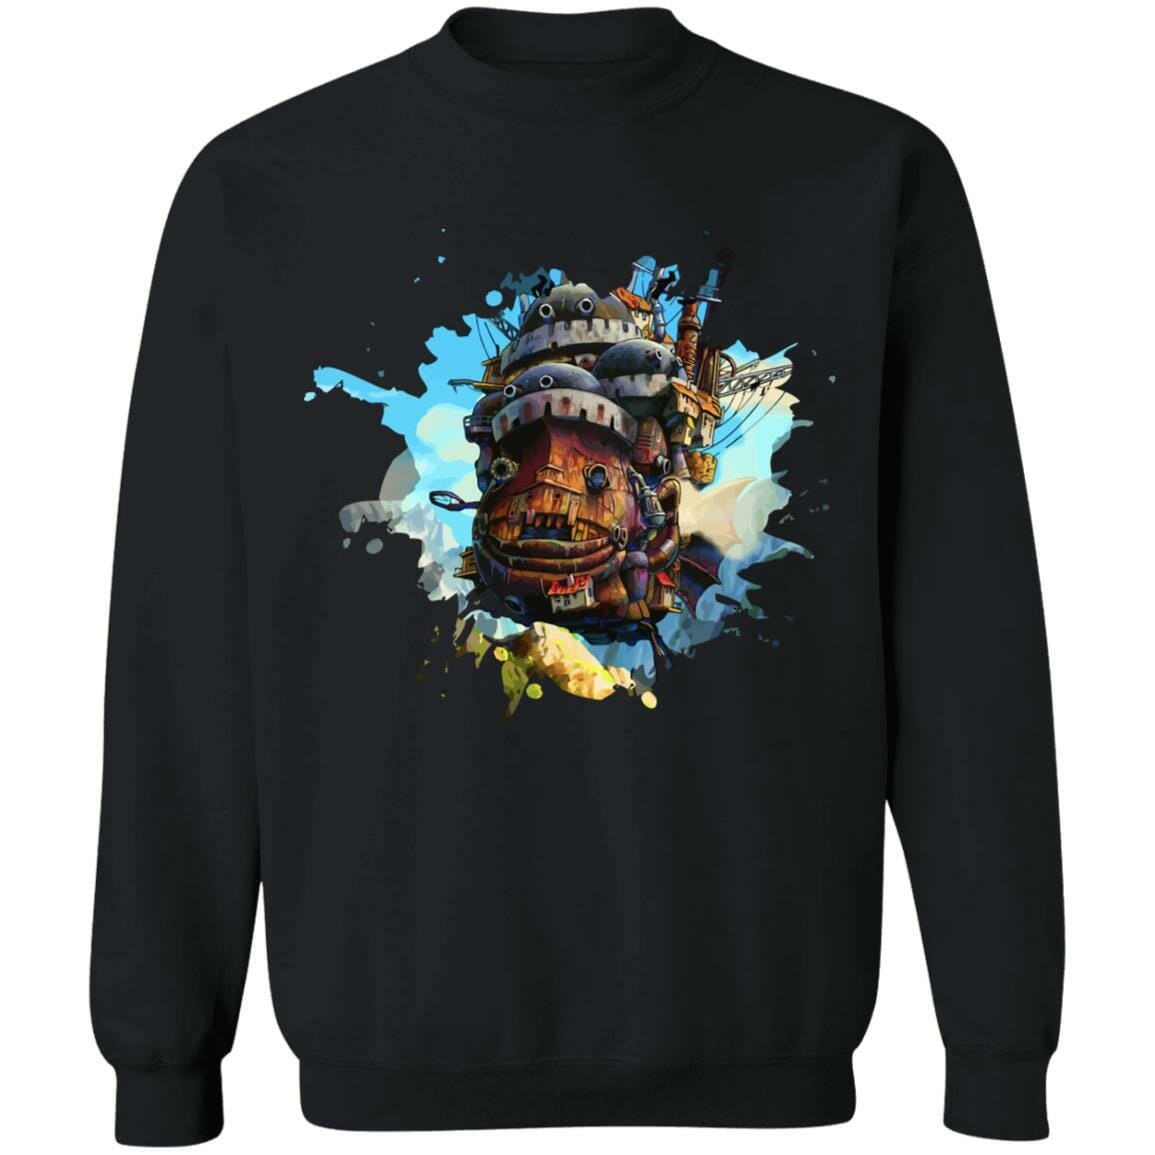 Howl's Moving Castle Painting Sweatshirt